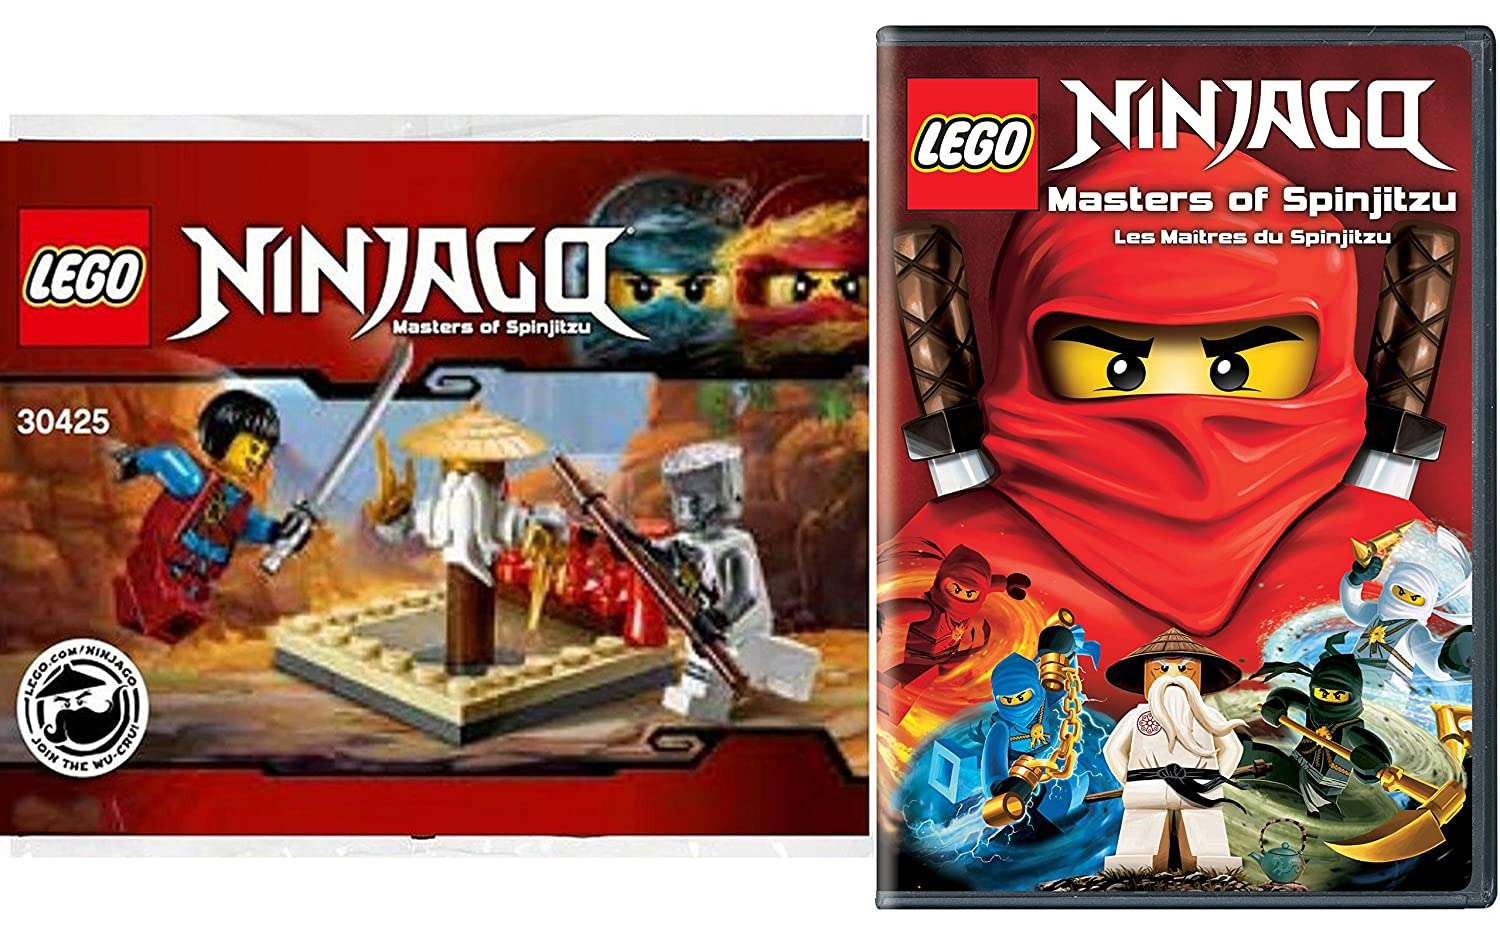 Amazon.com: Lego Ninjago Masters Of Spinjitzu Animated ...